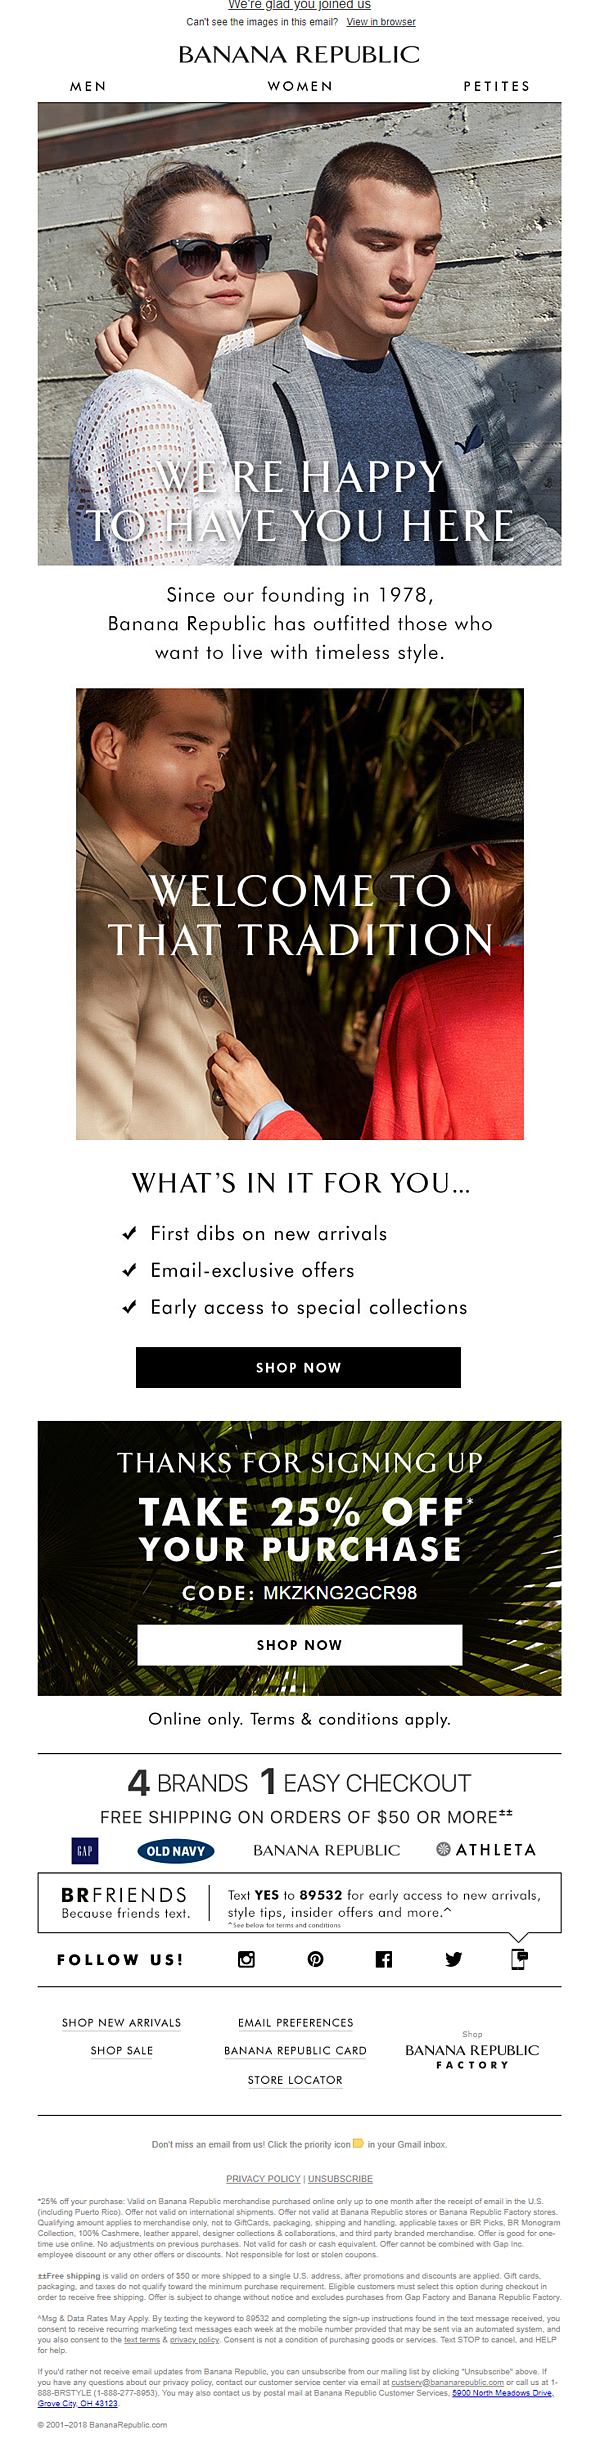 Banana Republic Welcome Email